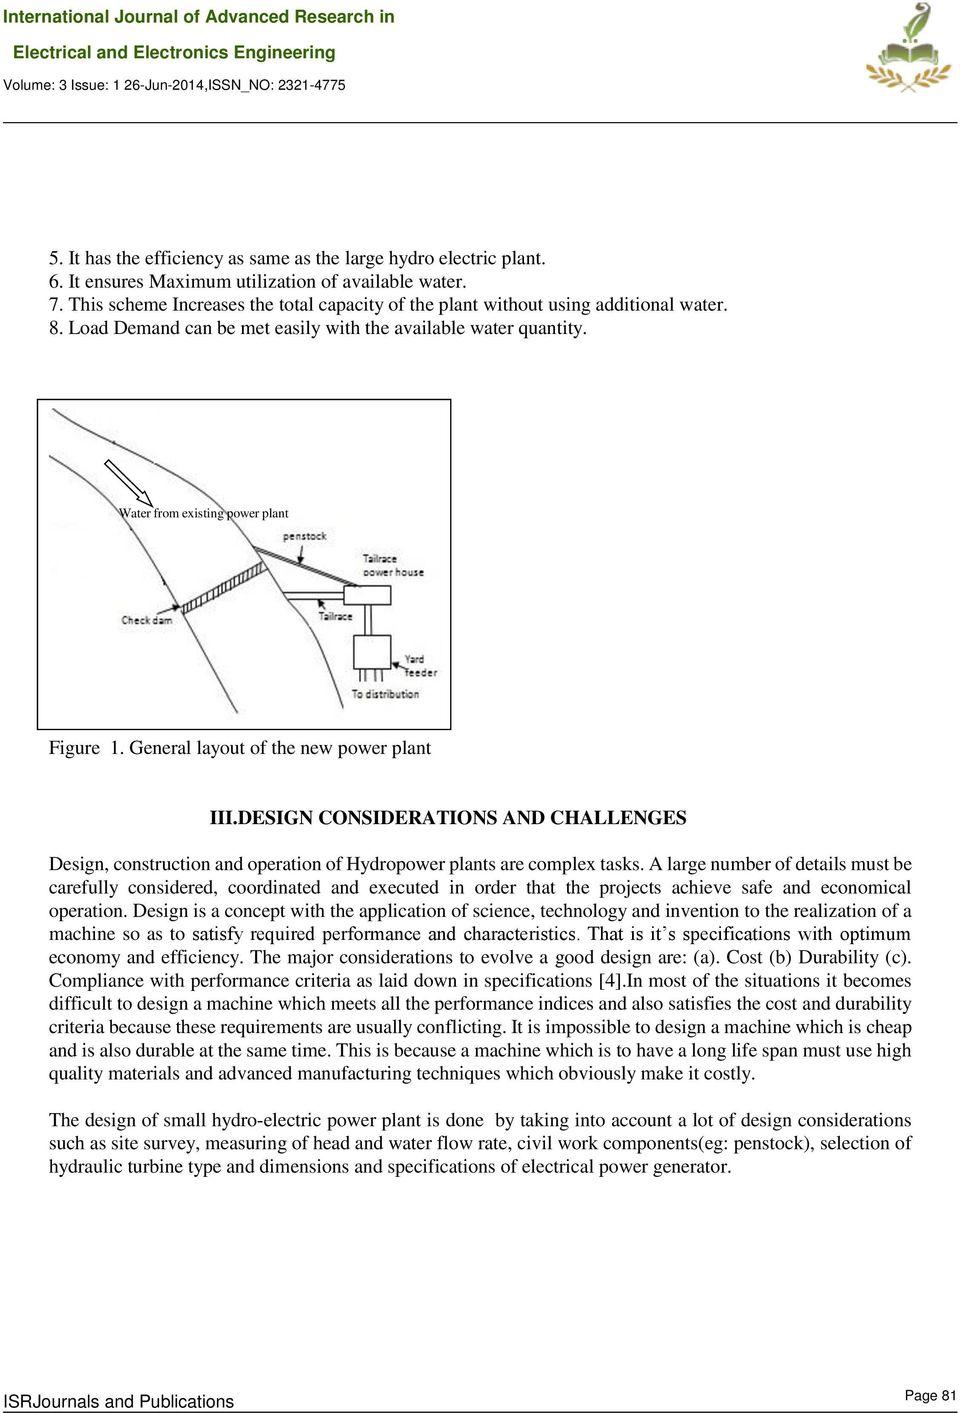 Design Of Small Hydro Electric Project Using Tailrace Extension Power Plant Line Diagram General Layout The New Iiidesign Considerations And Challenges Construction